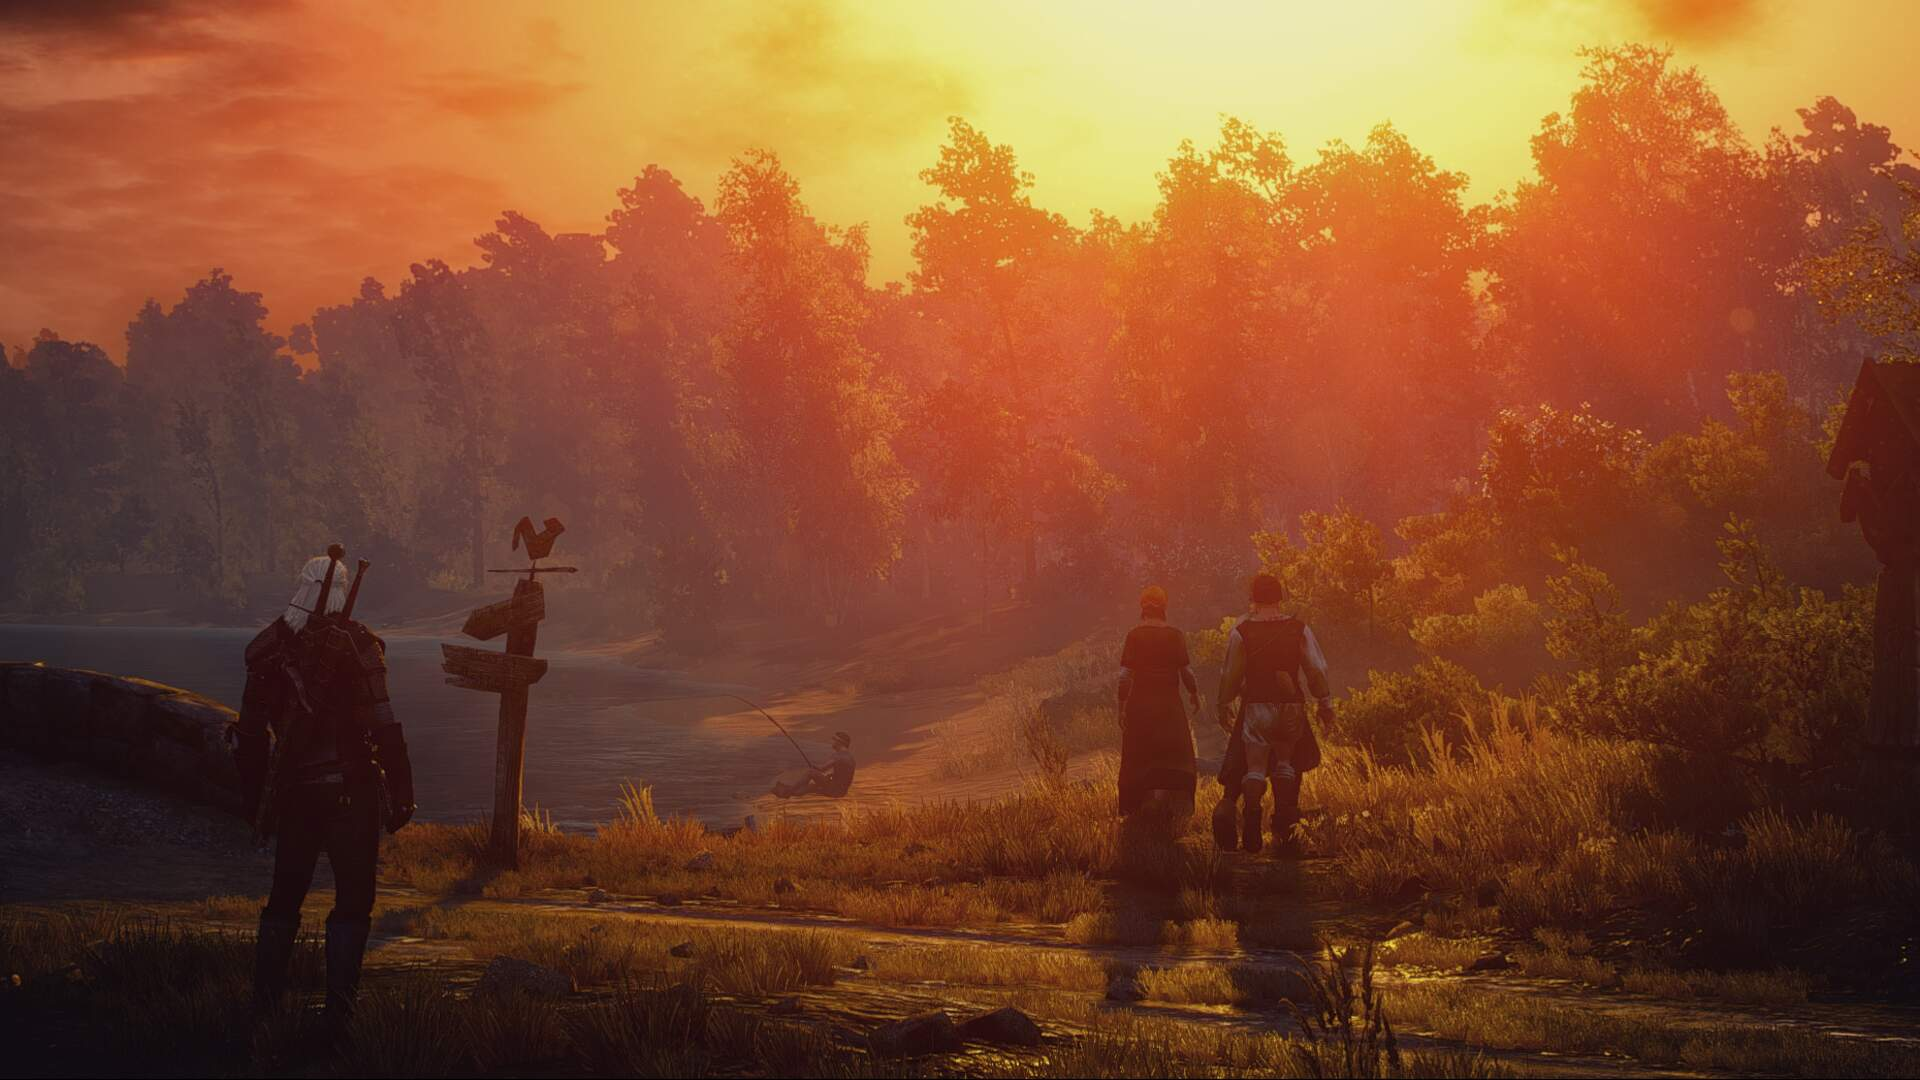 Witcher 3: How to Defeat Werewolves and Stop Their Health Regen Ability